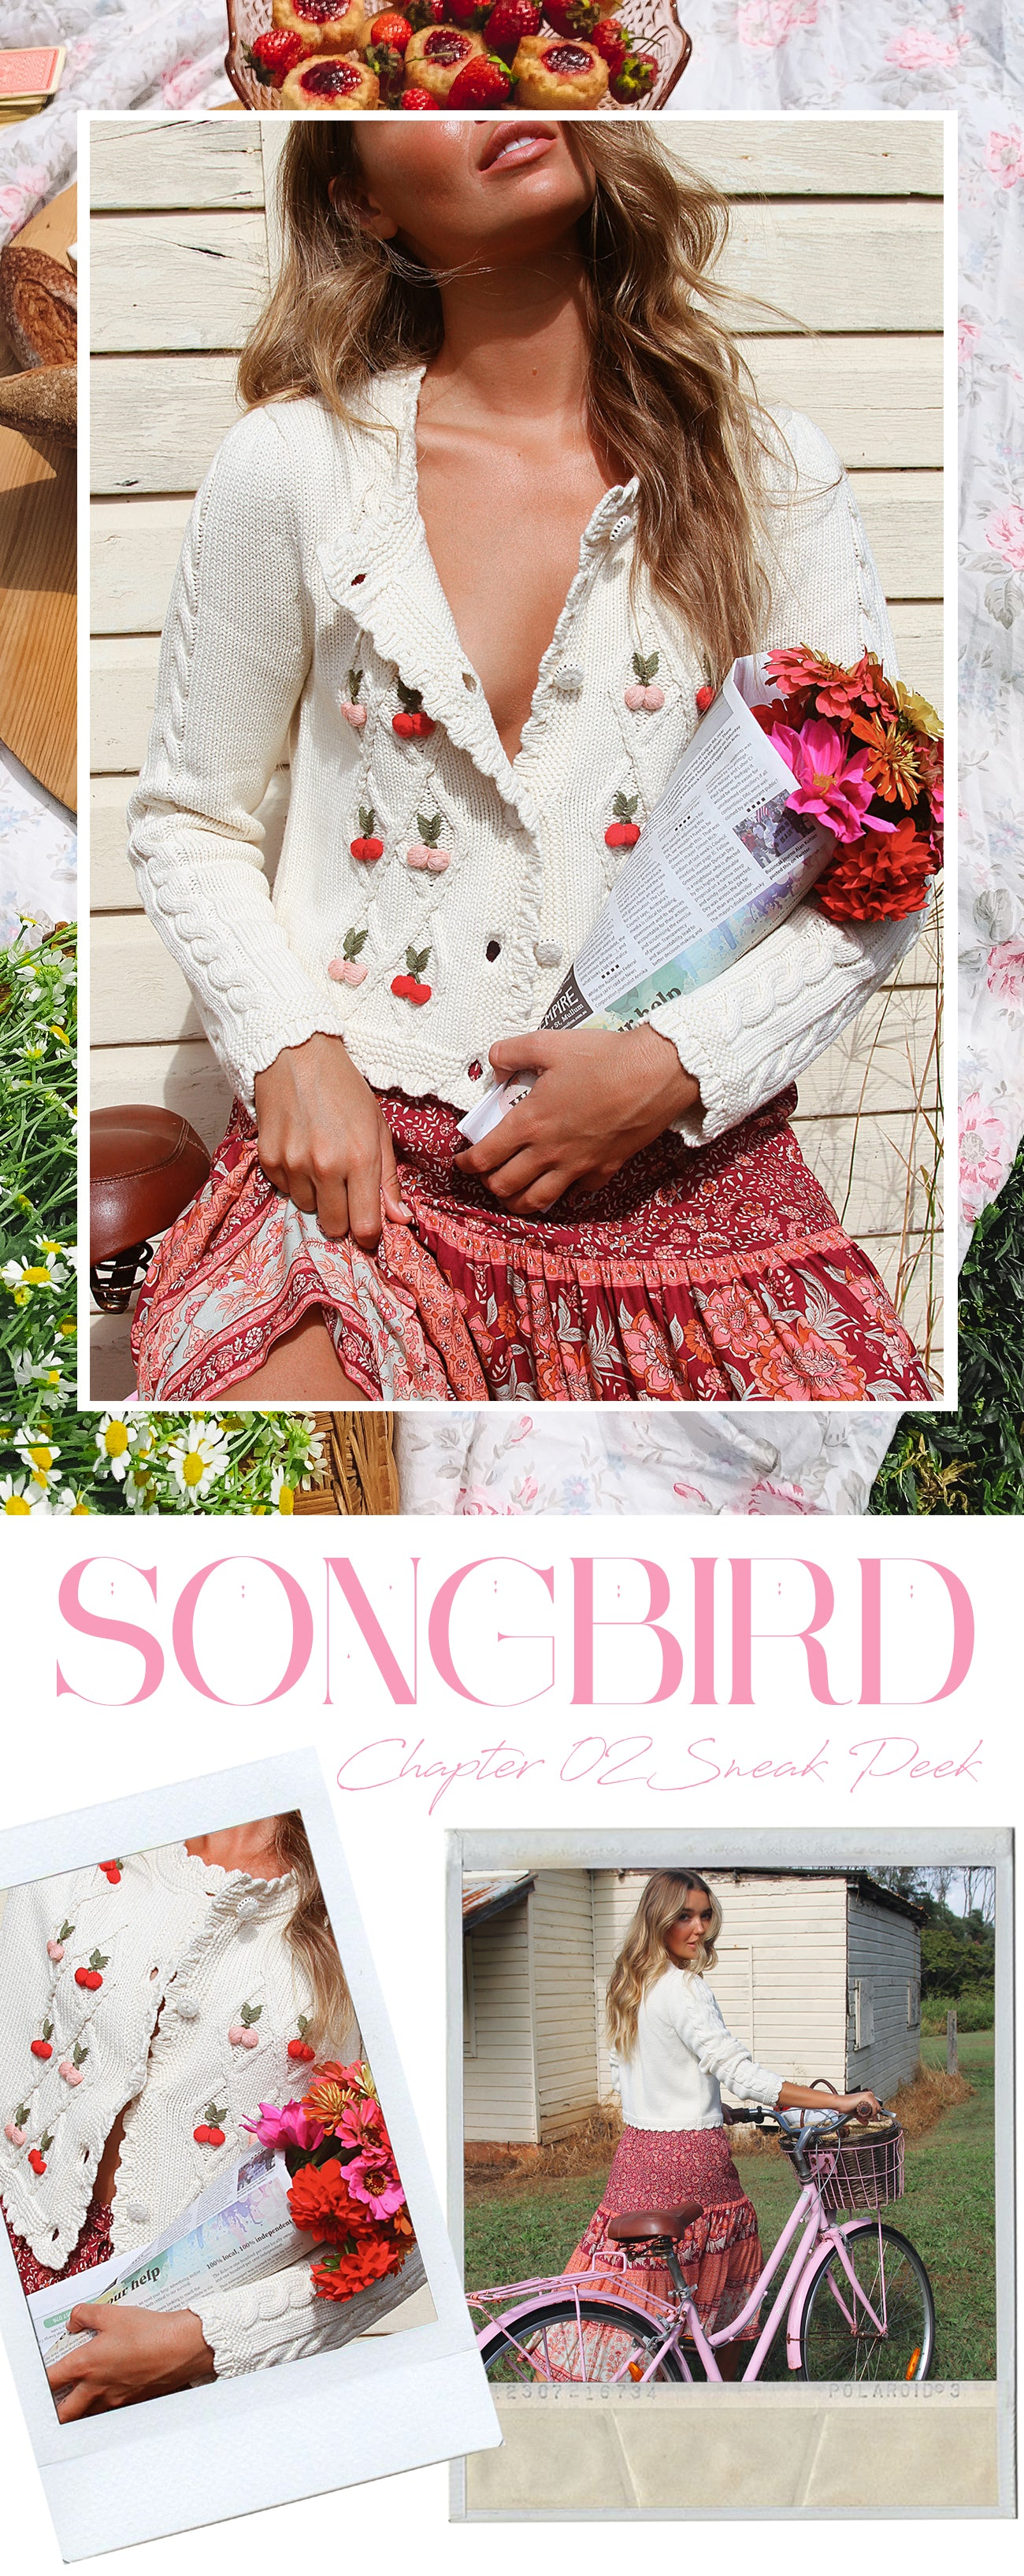 Songbird chapter 02